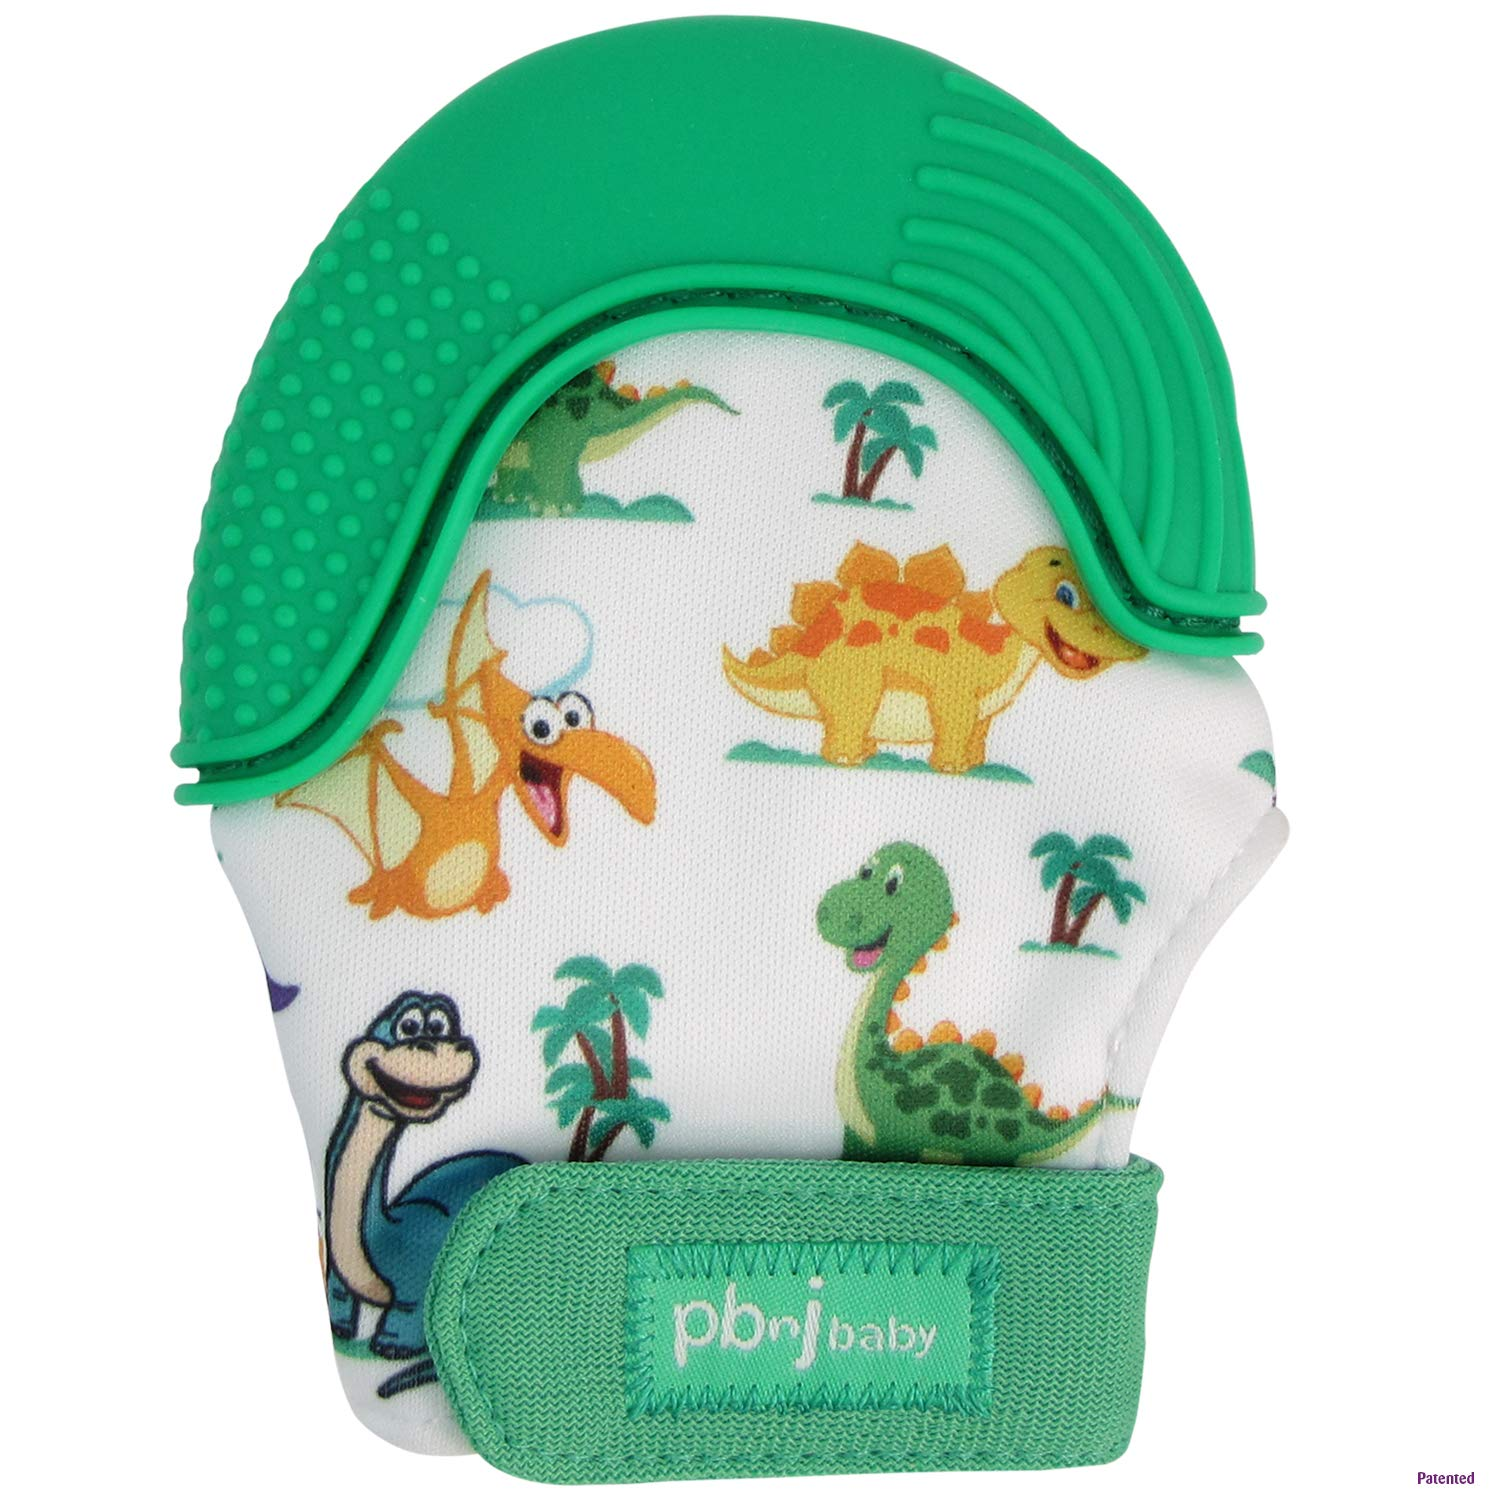 PBnJ baby Silicone Infant Teething Mitten Teether Glove Mitt Toy with Travel Bag (Dinosaur)